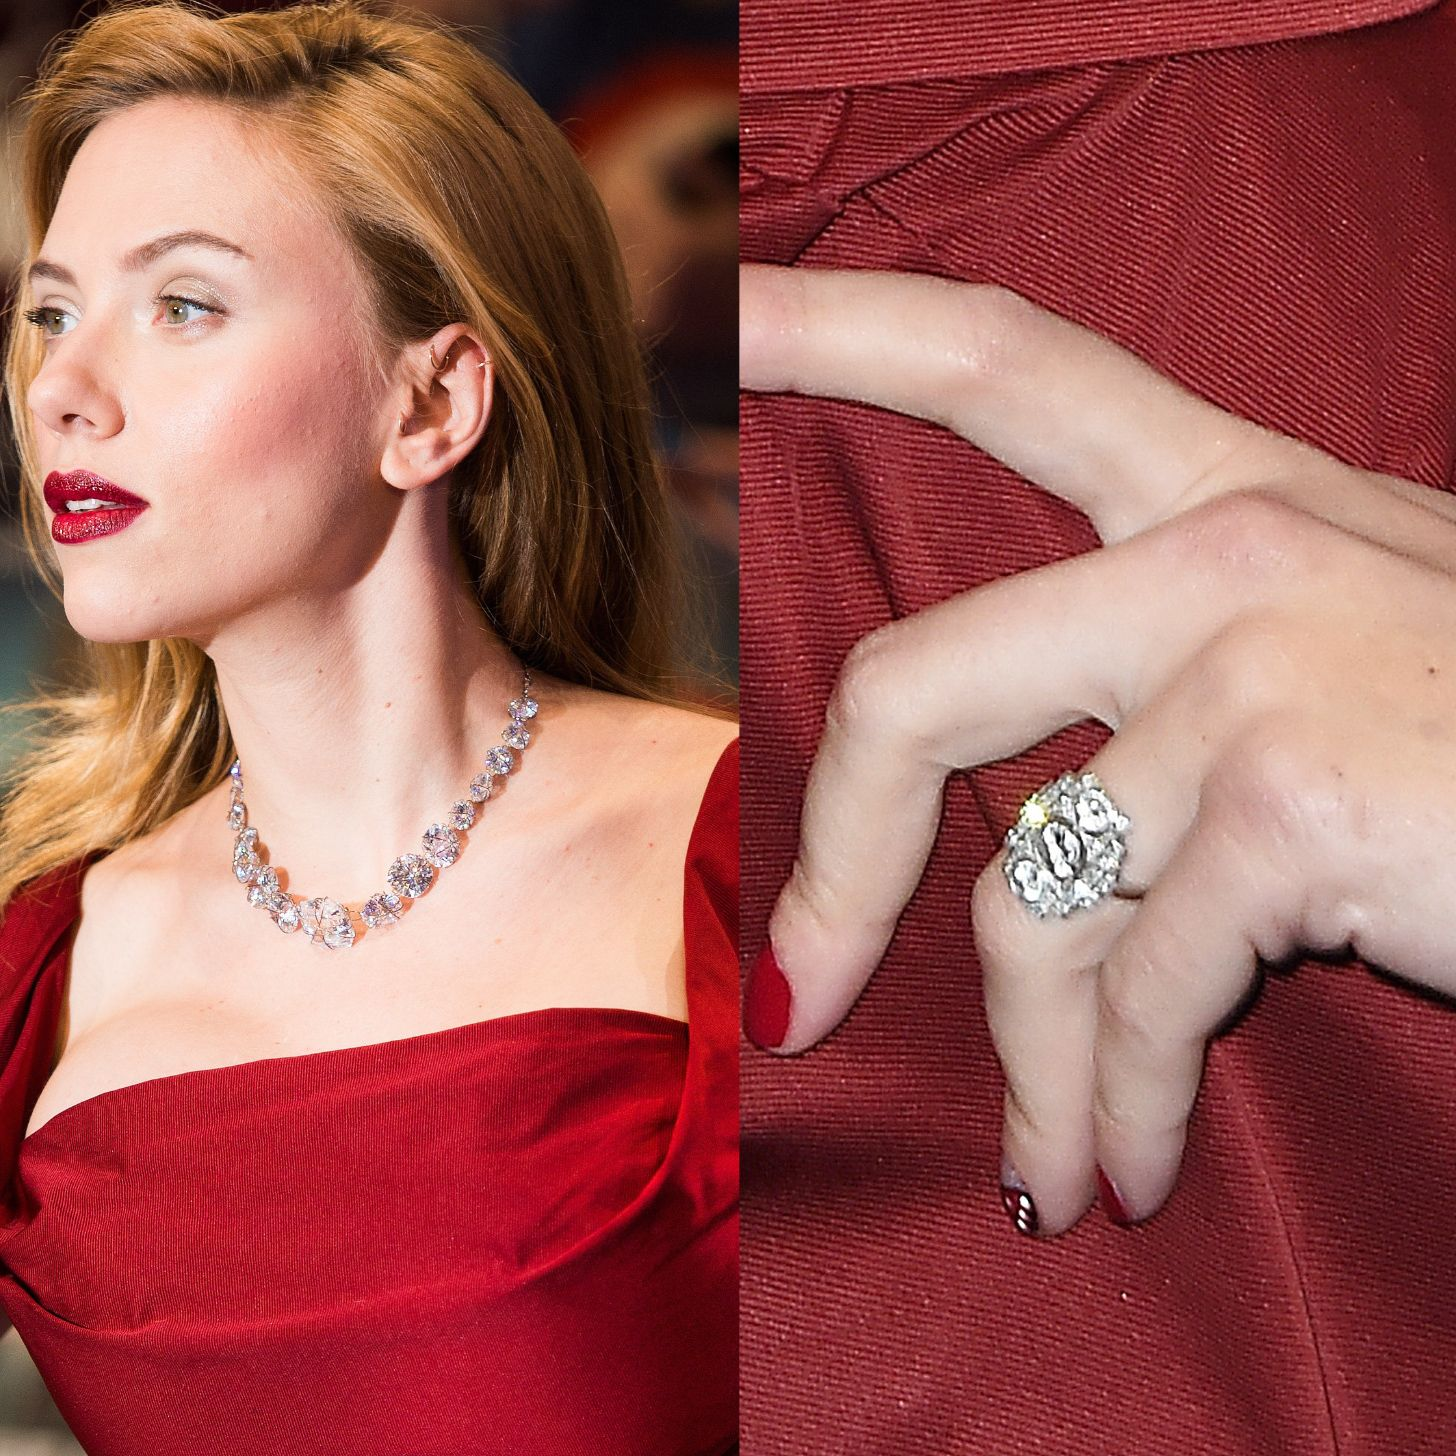 Engagement Rings Celebrity: One Ring To Rule Them All: The Ultimate Celebrity